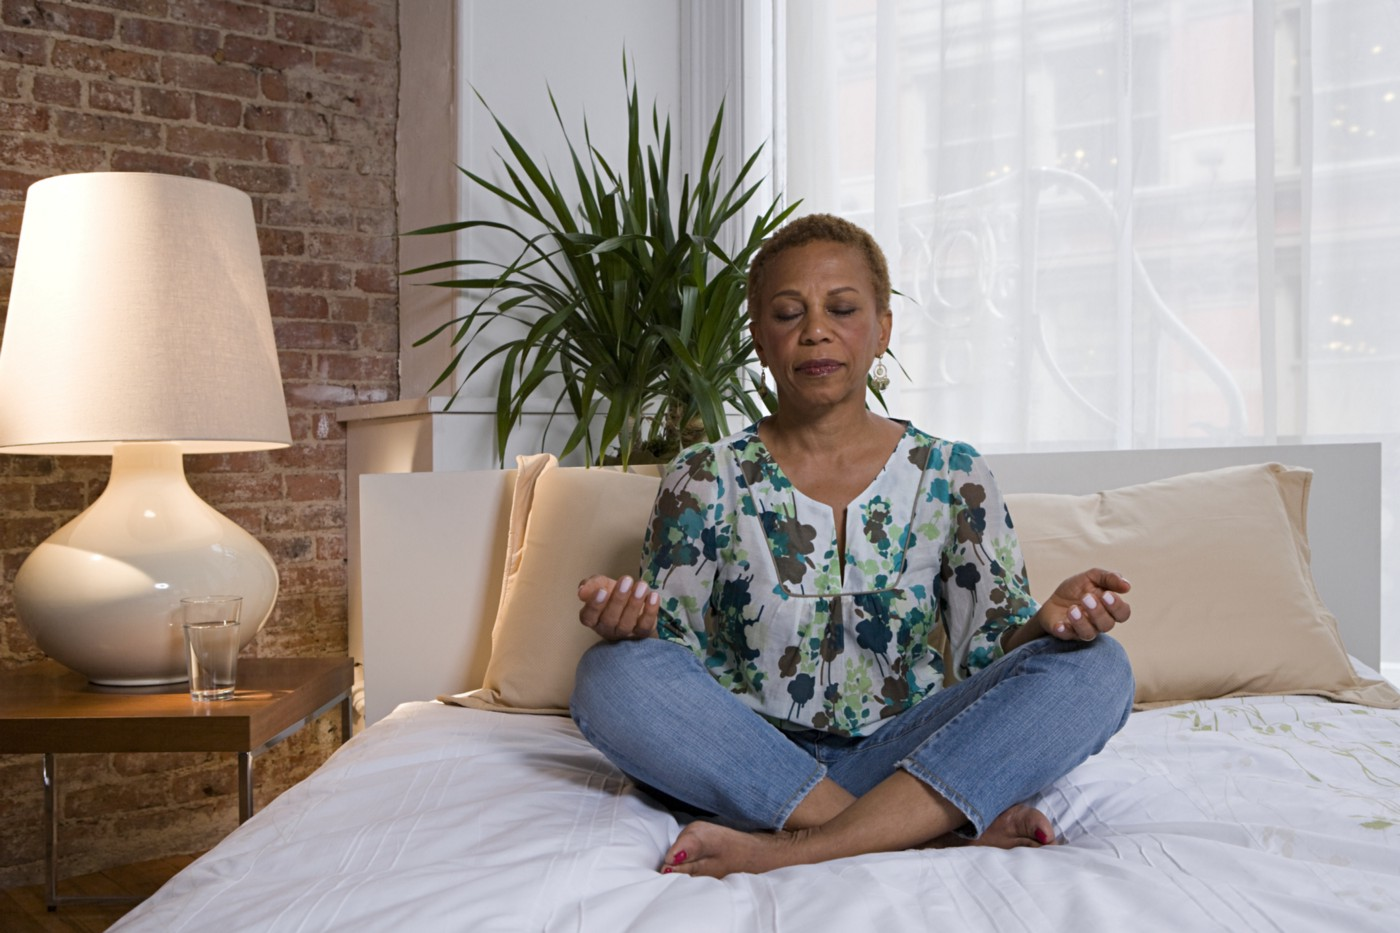 Older Black woman sitting cross-legged meditating on her bed.